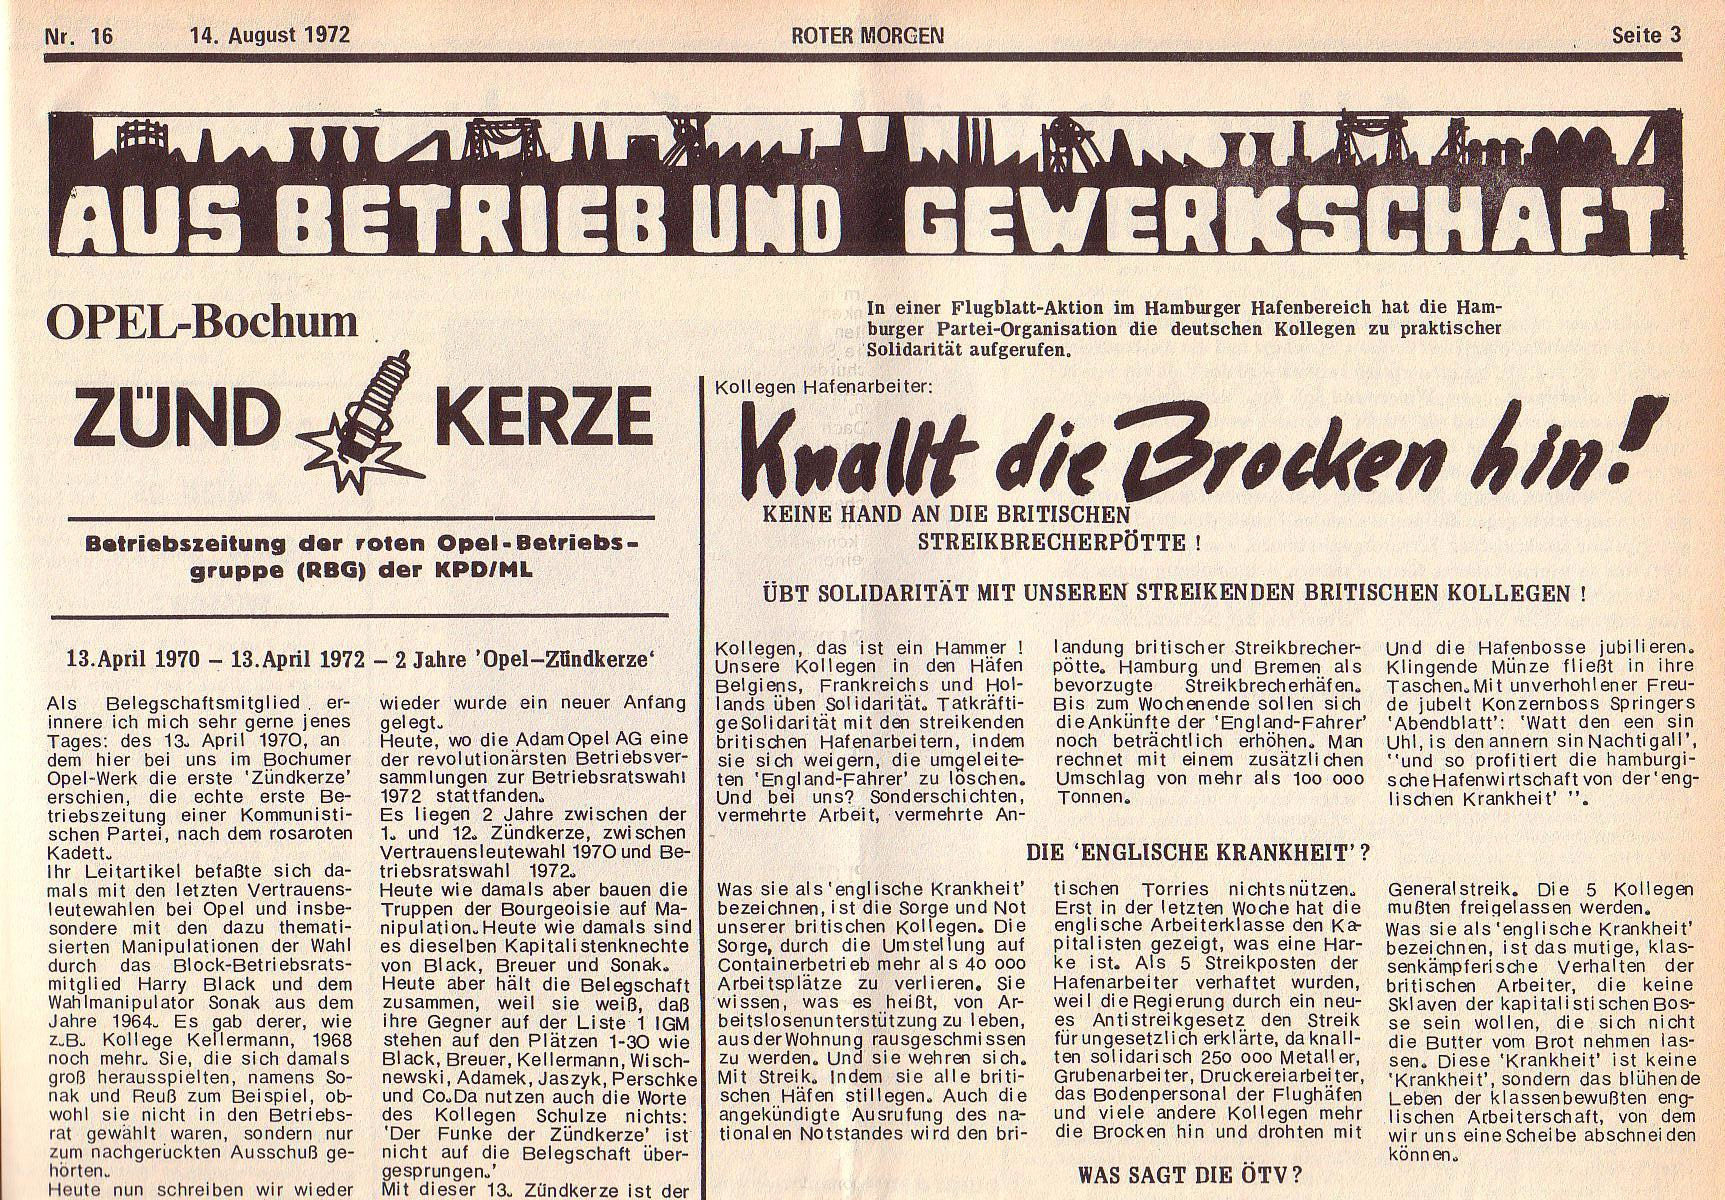 Roter Morgen, 6. Jg., 14. August 1972, Nr. 16, Seite 3a